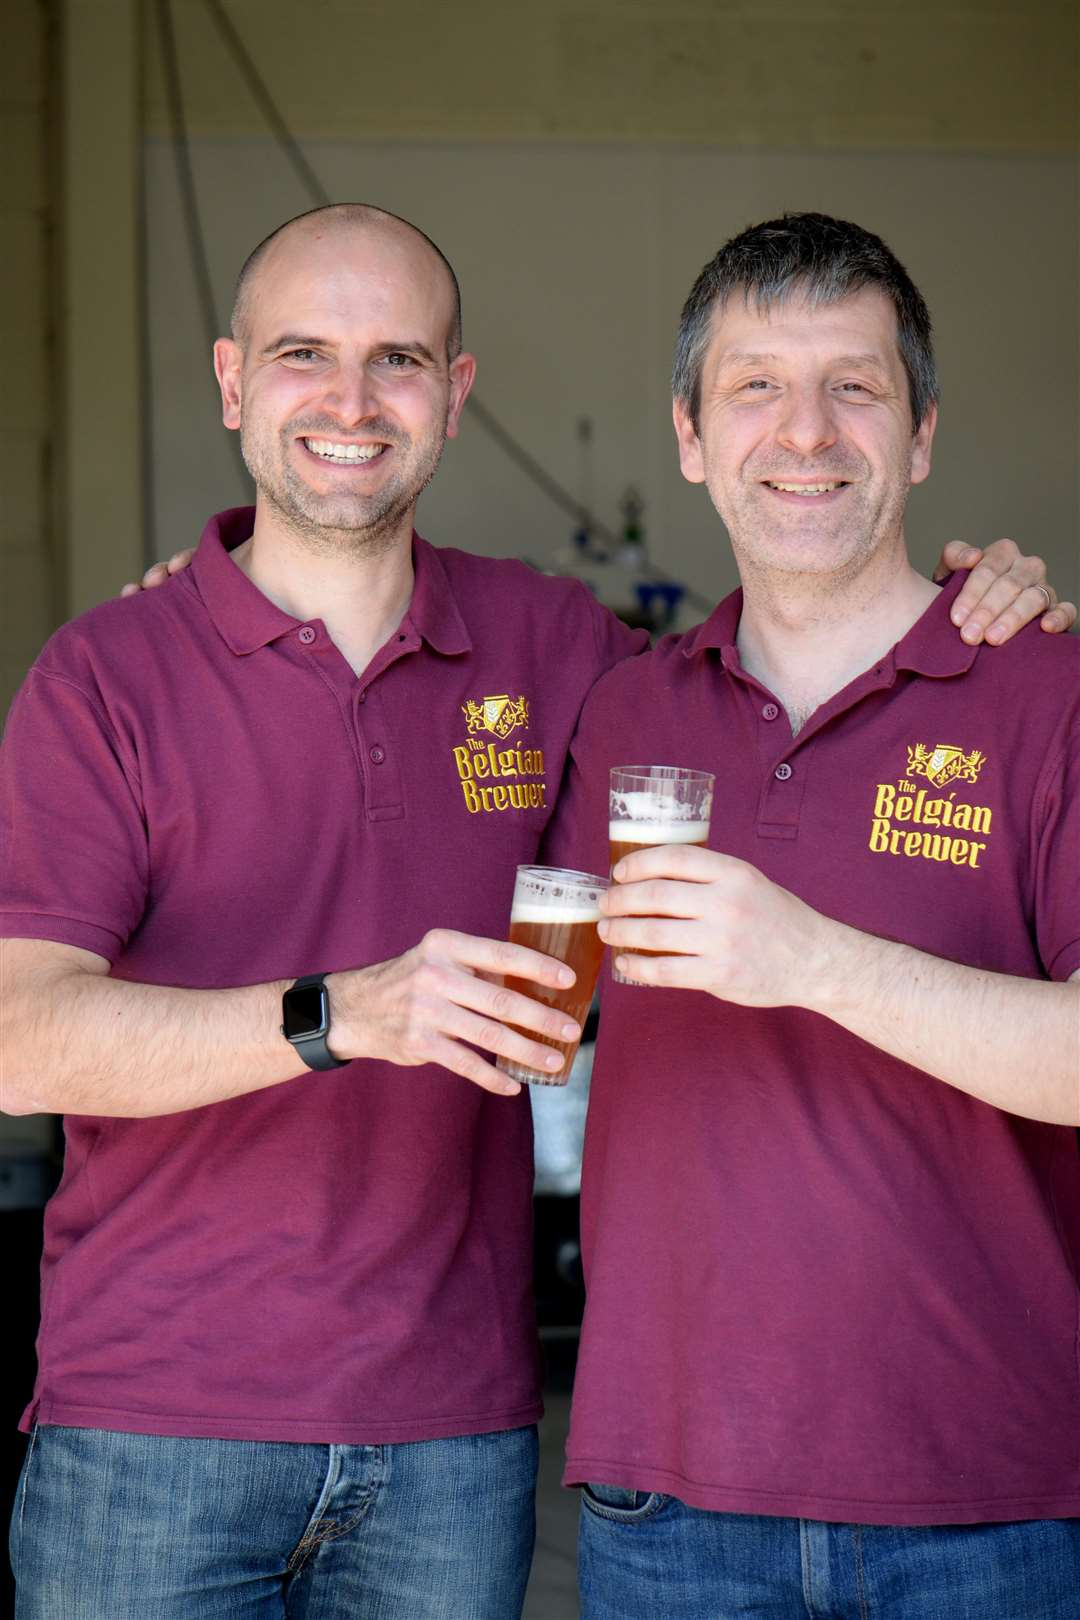 Raynham Road, Bishops Stortford. Official opening for new micro brewery The Belgian Brewer. l-r: Scott Williams and Nik Lemmens. .Pic: Vikki Lince. (9092071)